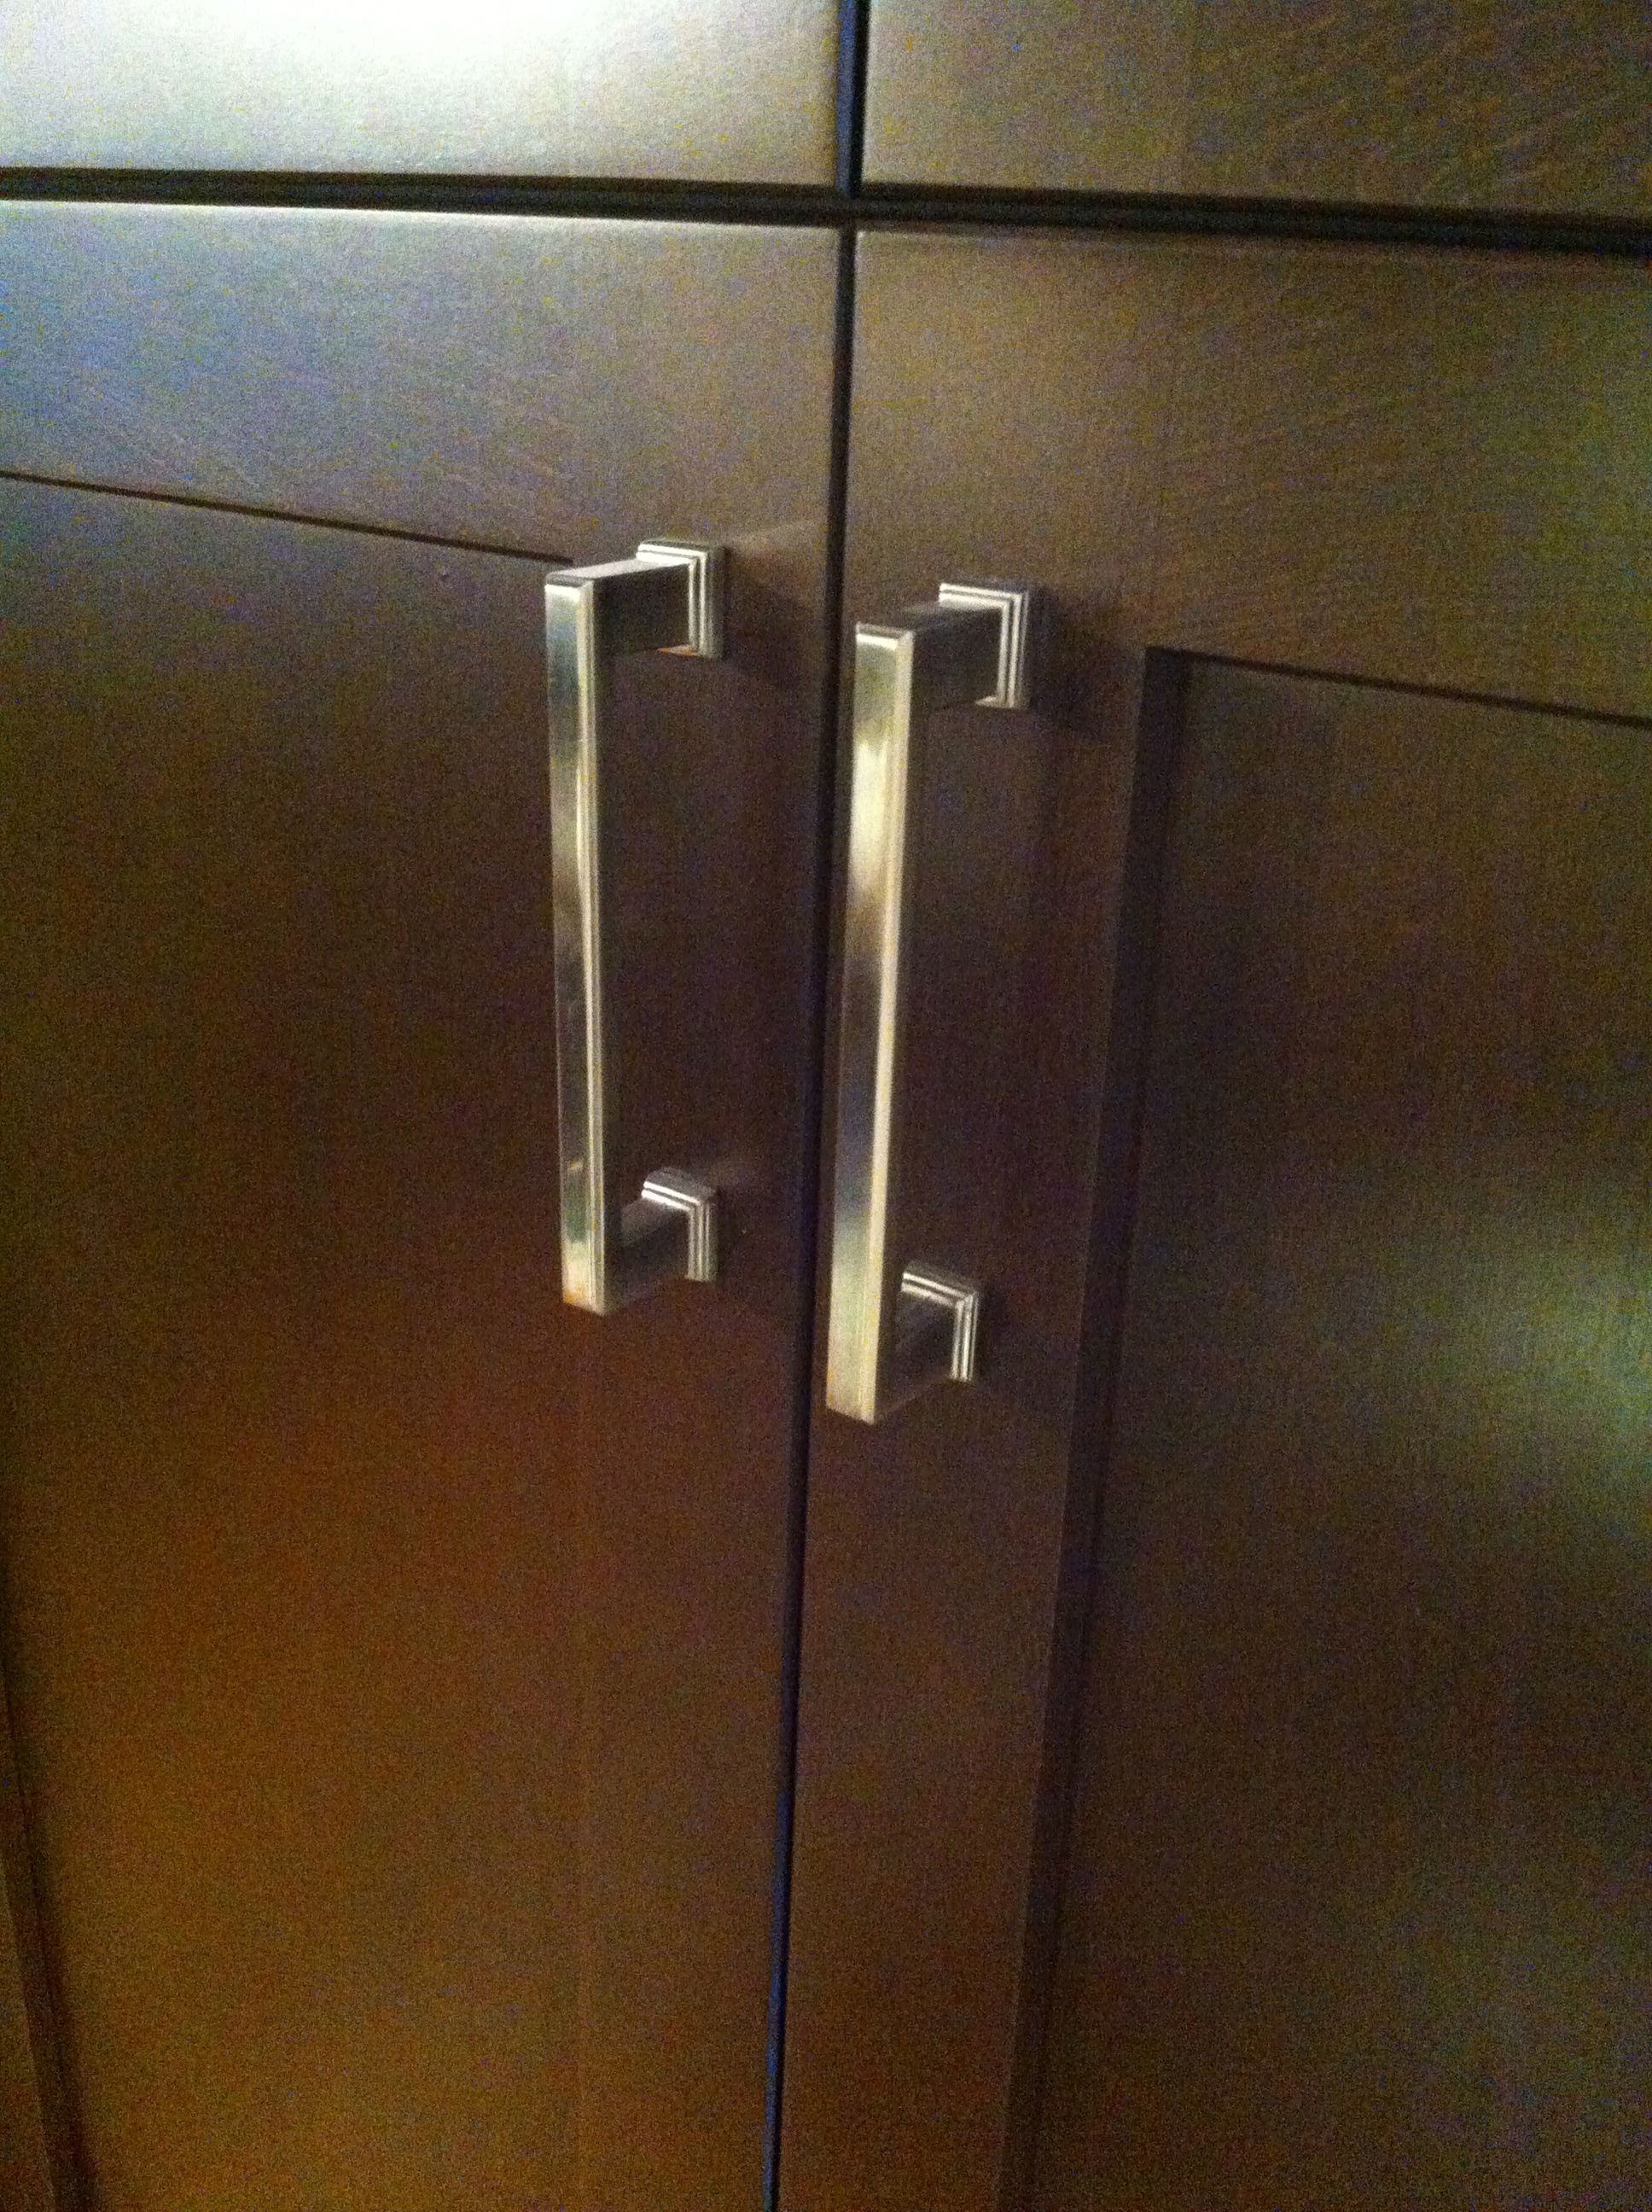 Alexander emtek pull shown on wood cabinet this photo shows the narrow detail of the pull shown in satin nickel